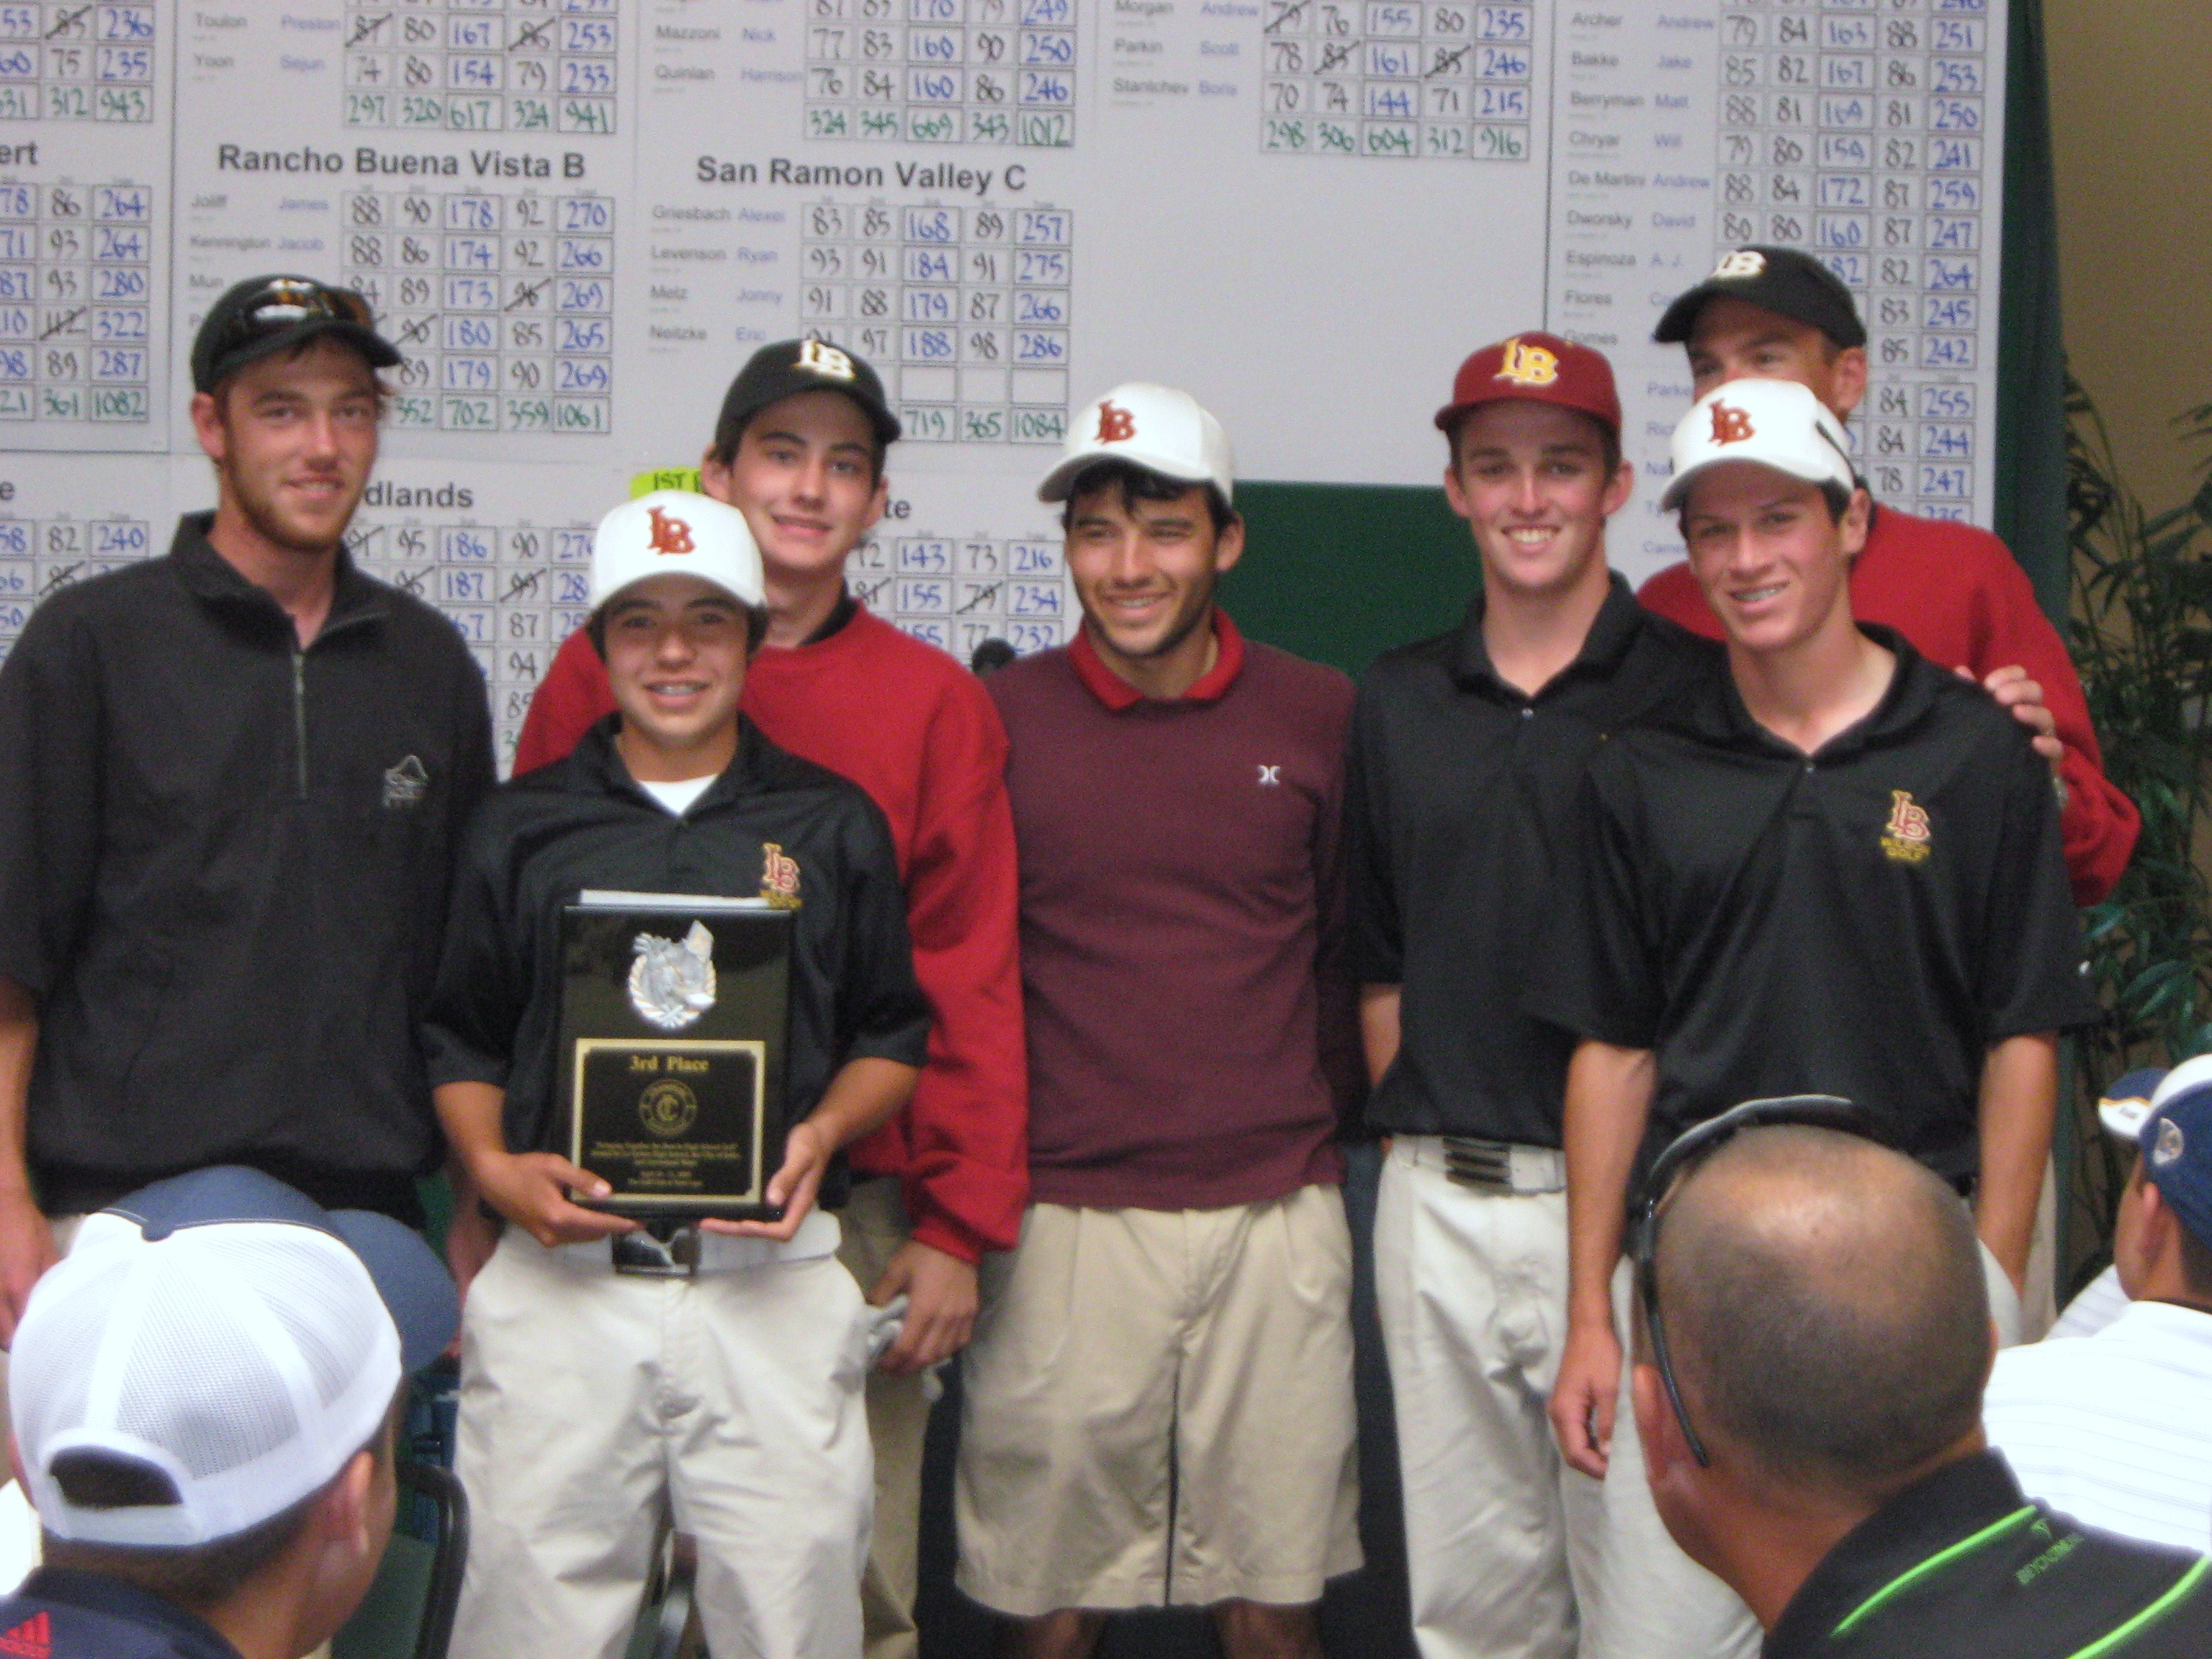 2009 Varsity Team - 3rd Place Champions Invitational